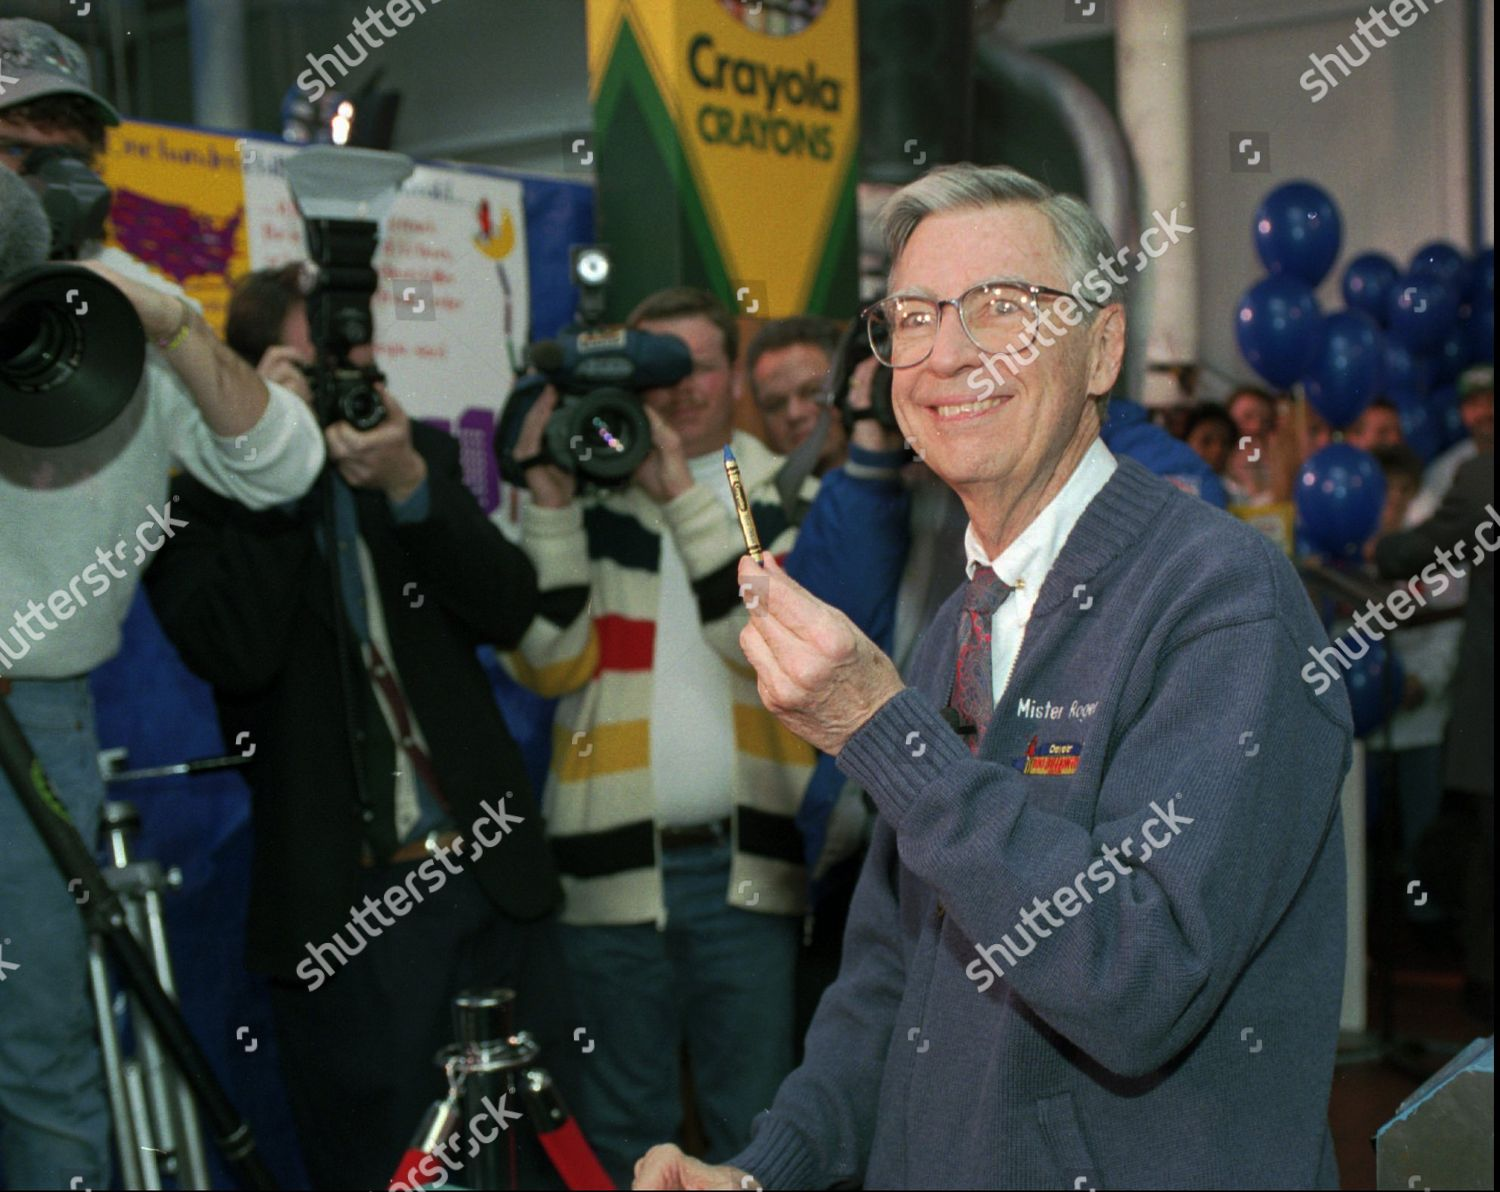 Rogers Fred Rogers Mister Rogers Neighborhood Holds Editorial Stock Photo Stock Image Shutterstock